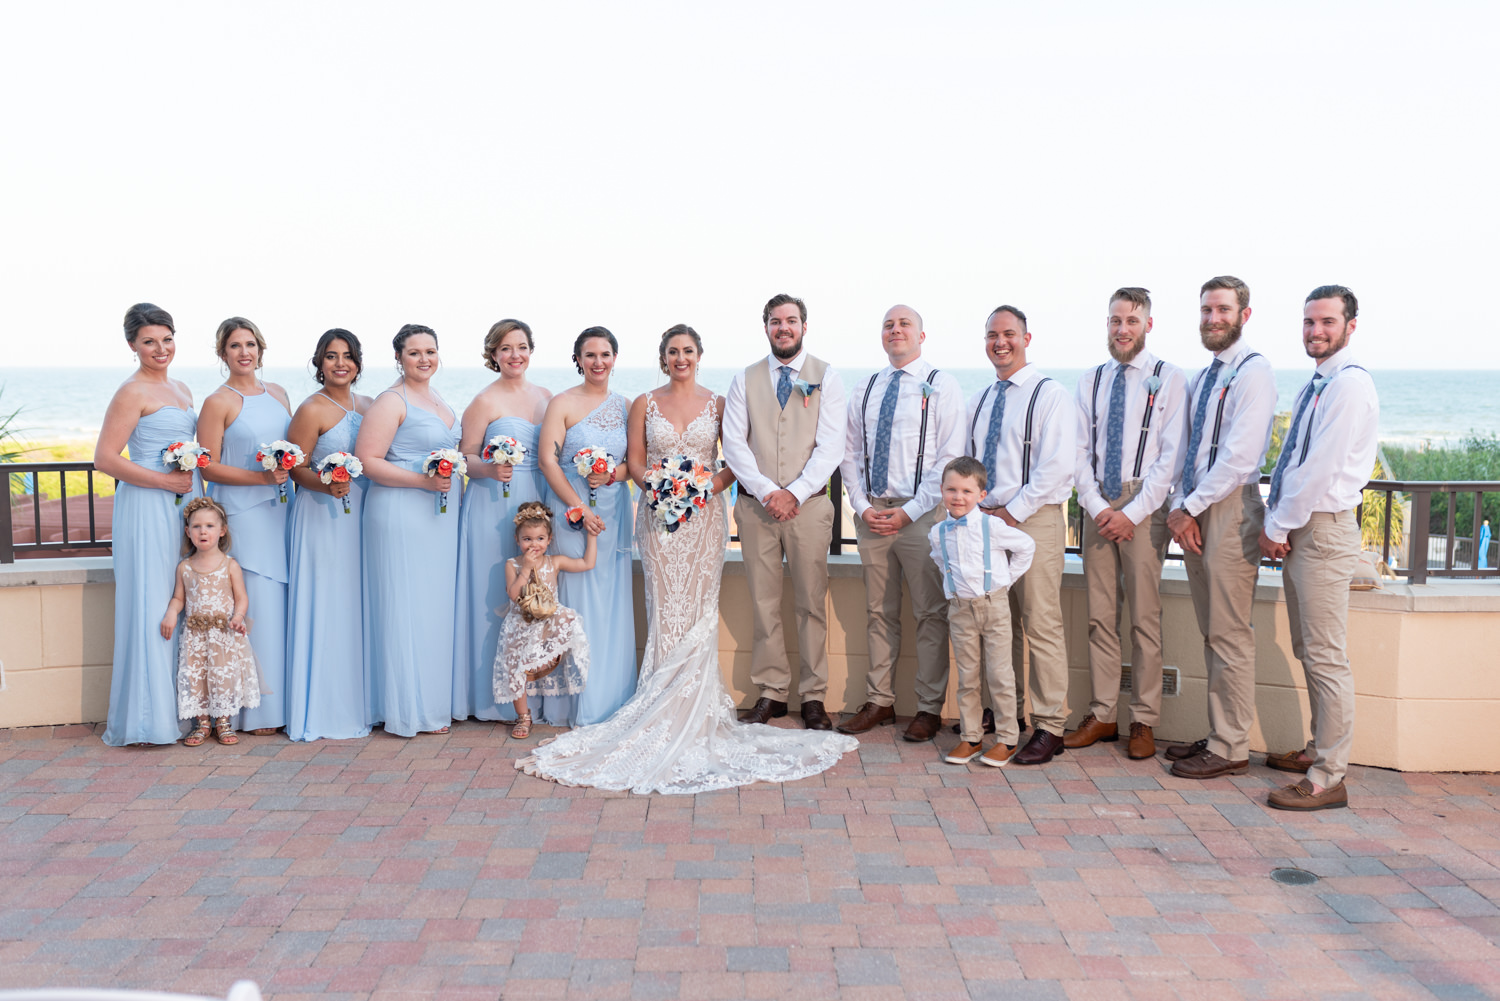 Wedding party on the balcony - Grande Dunes Ocean Club - Myrtle Beach